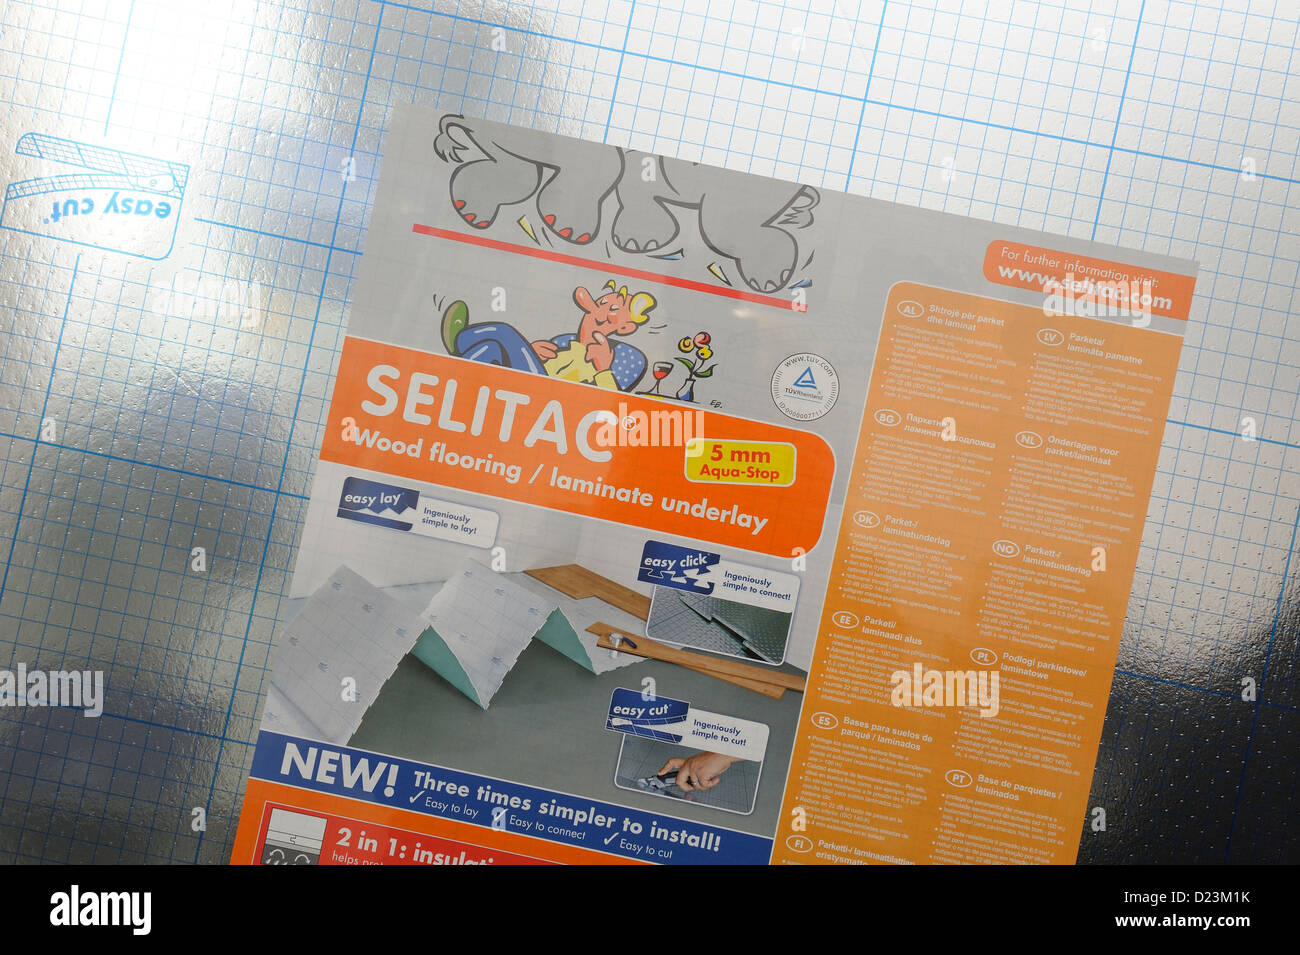 selitac wood flooring laminate underlay stock photo: 52941999 - alamy